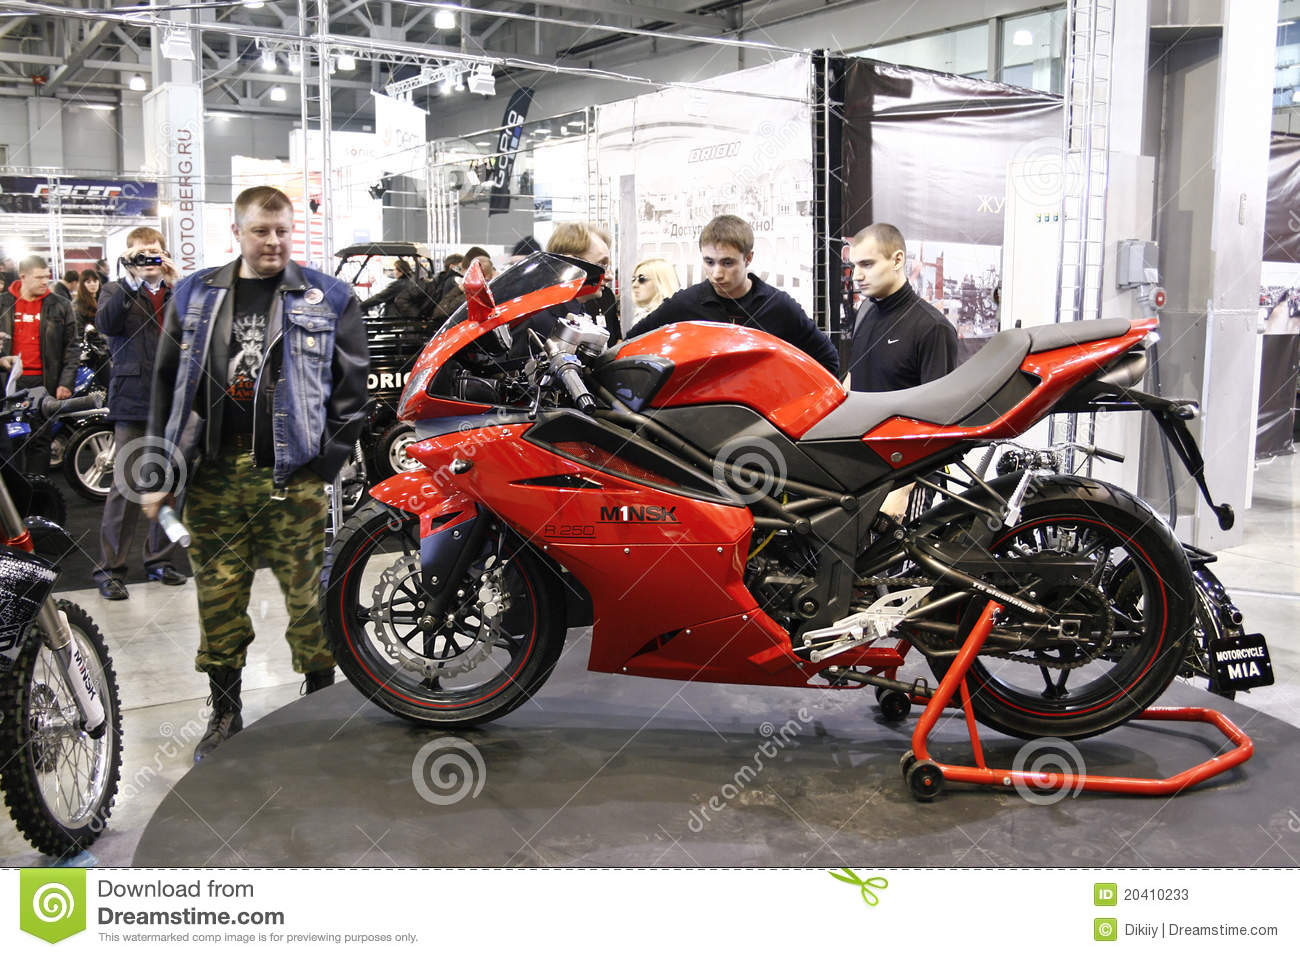 Motorcycle Minsk: technical characteristics and success in the international market 96